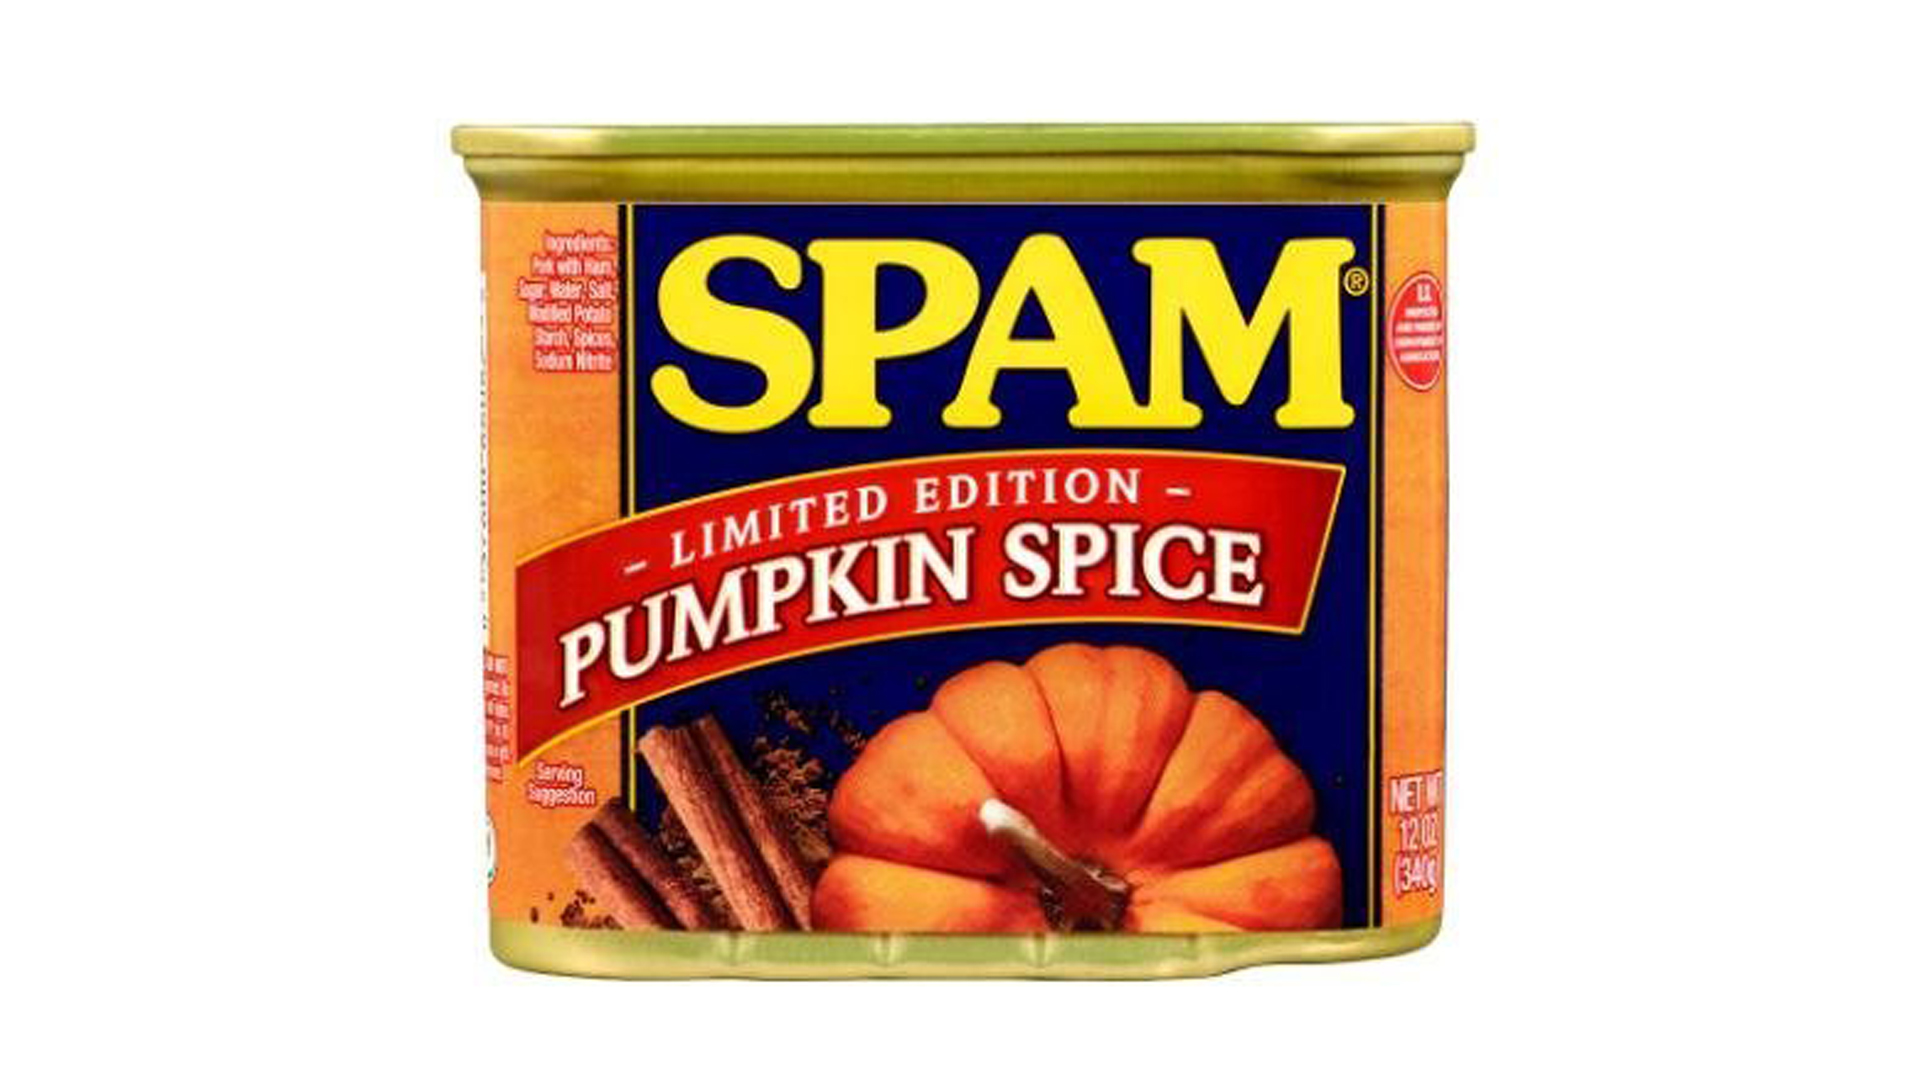 Pumpkin spice spam will be available for purchase at Walmart starting Sept. 23. (Credit: Hormel Foods)